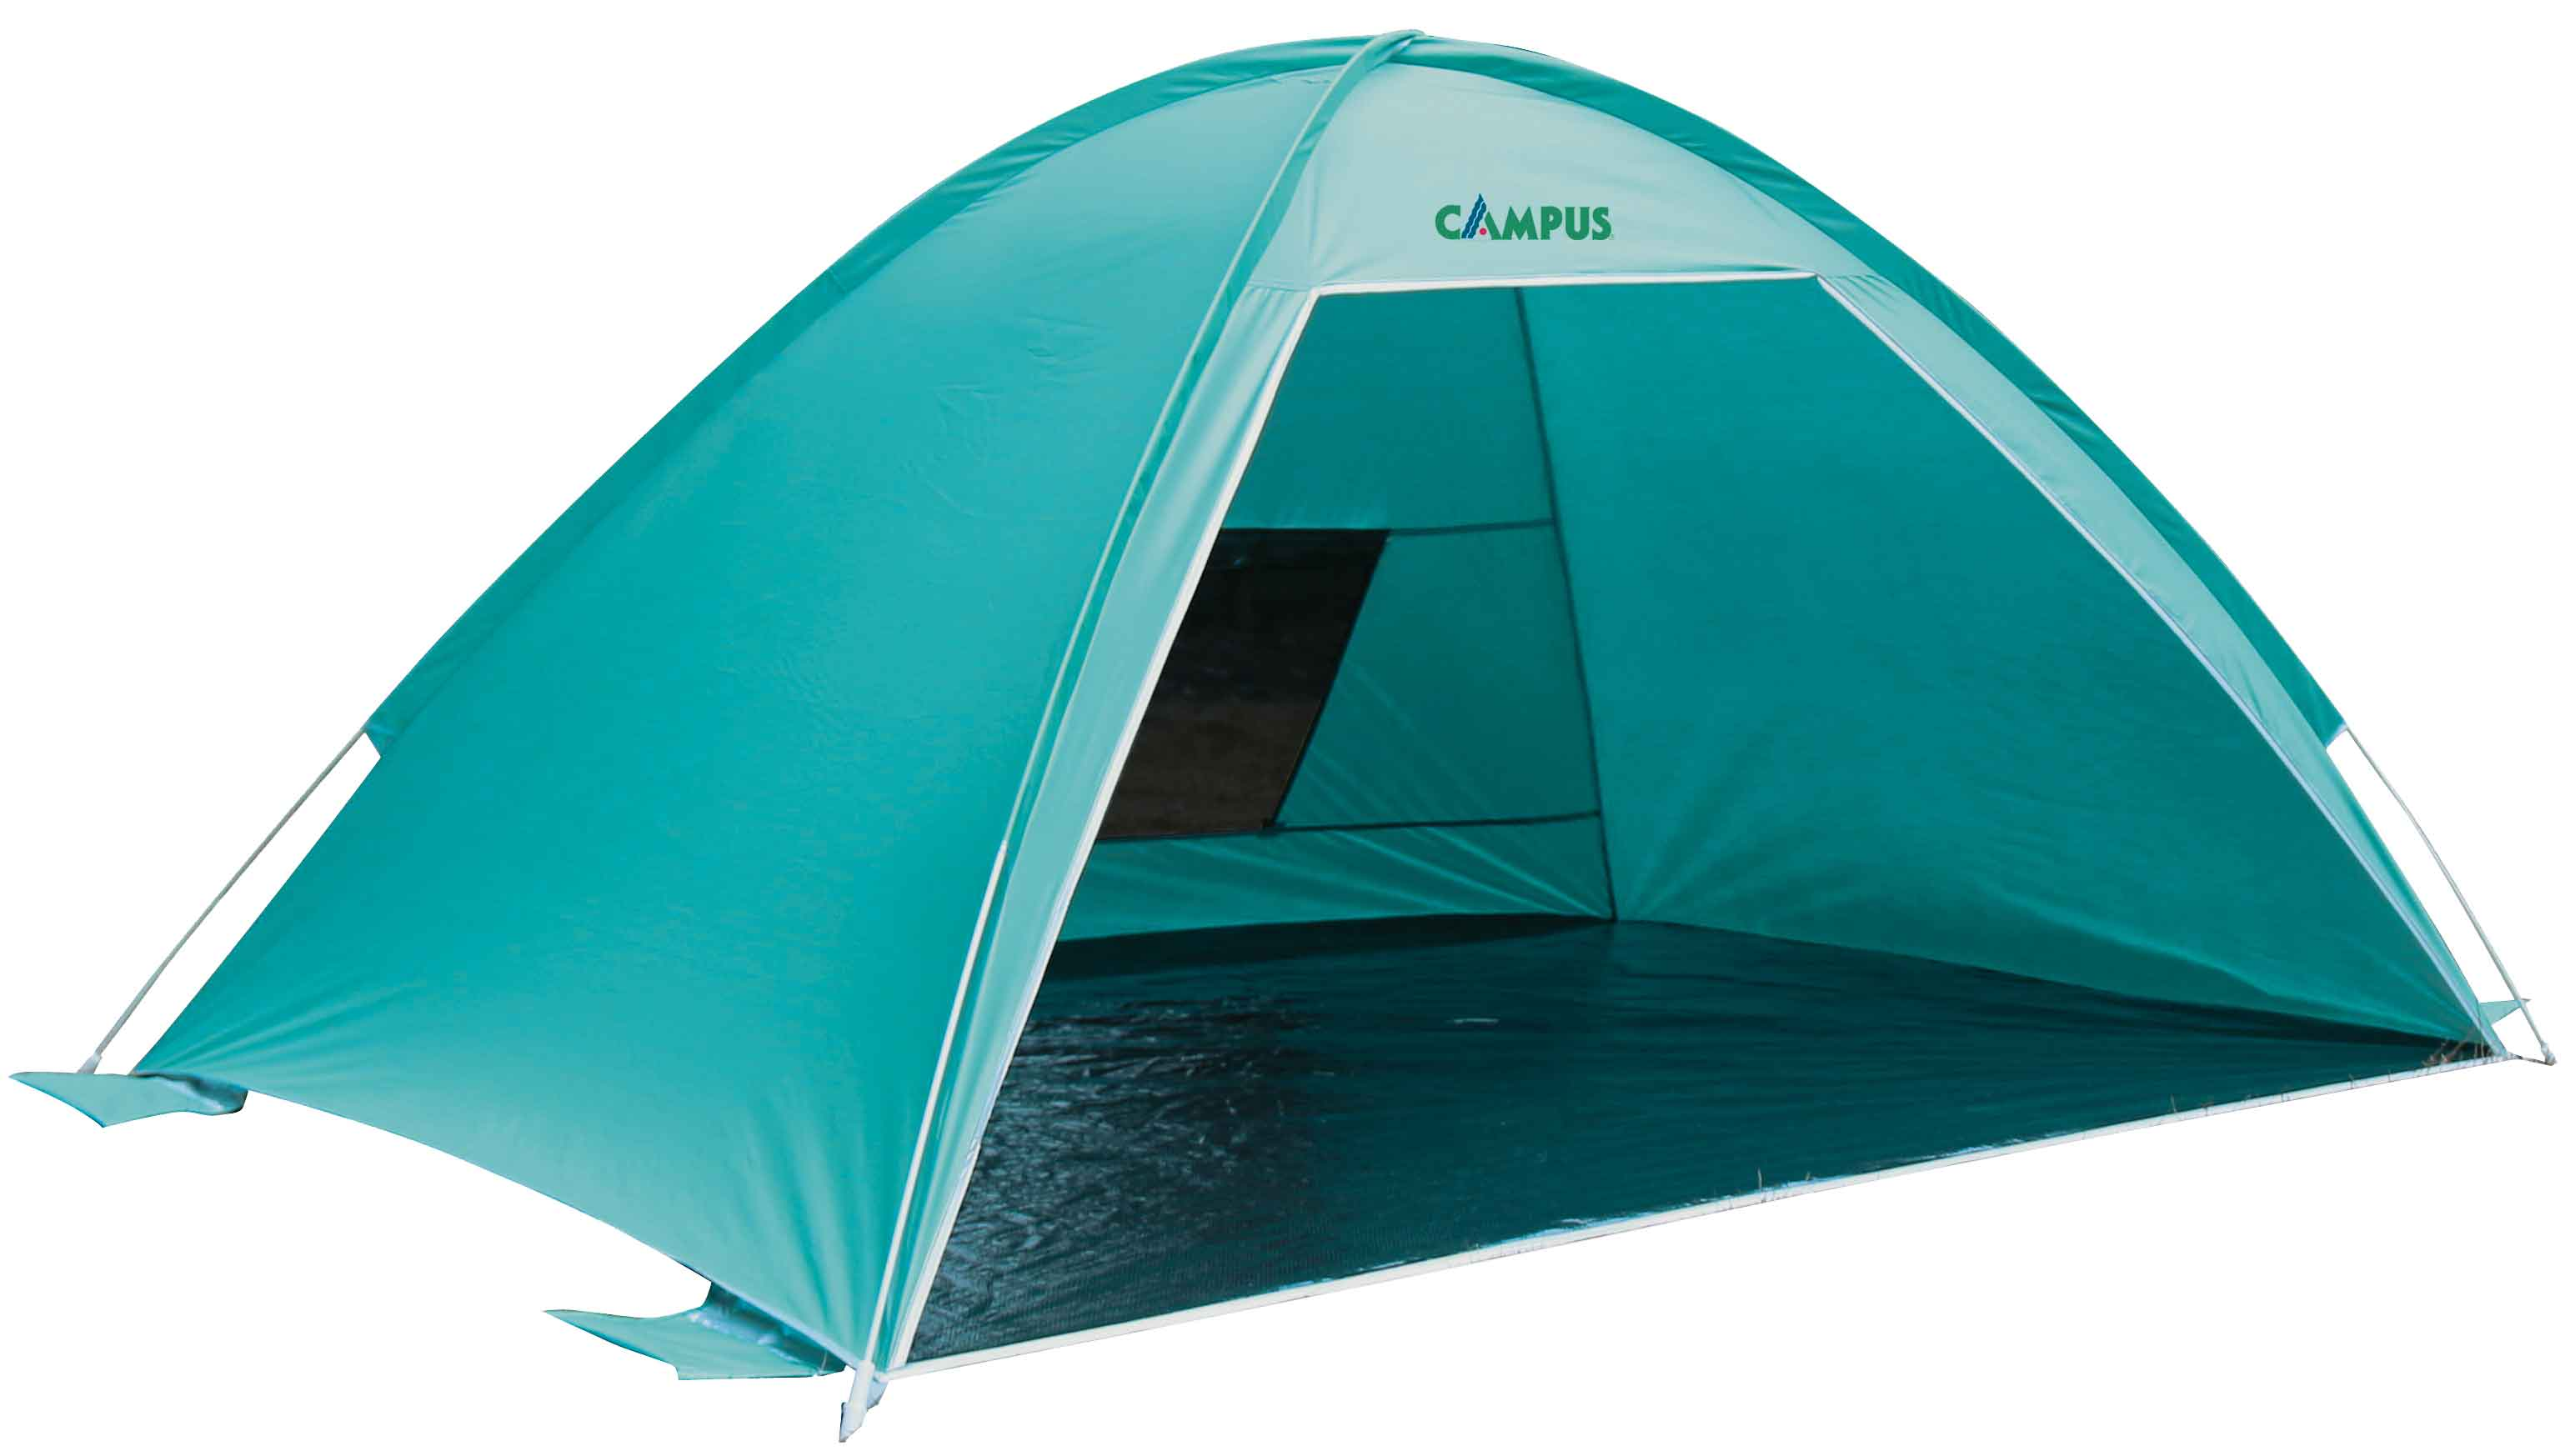 IGLOO EASY BEACH TENT POP UP CAMPUS,150*220*110cm SUNREFLECT